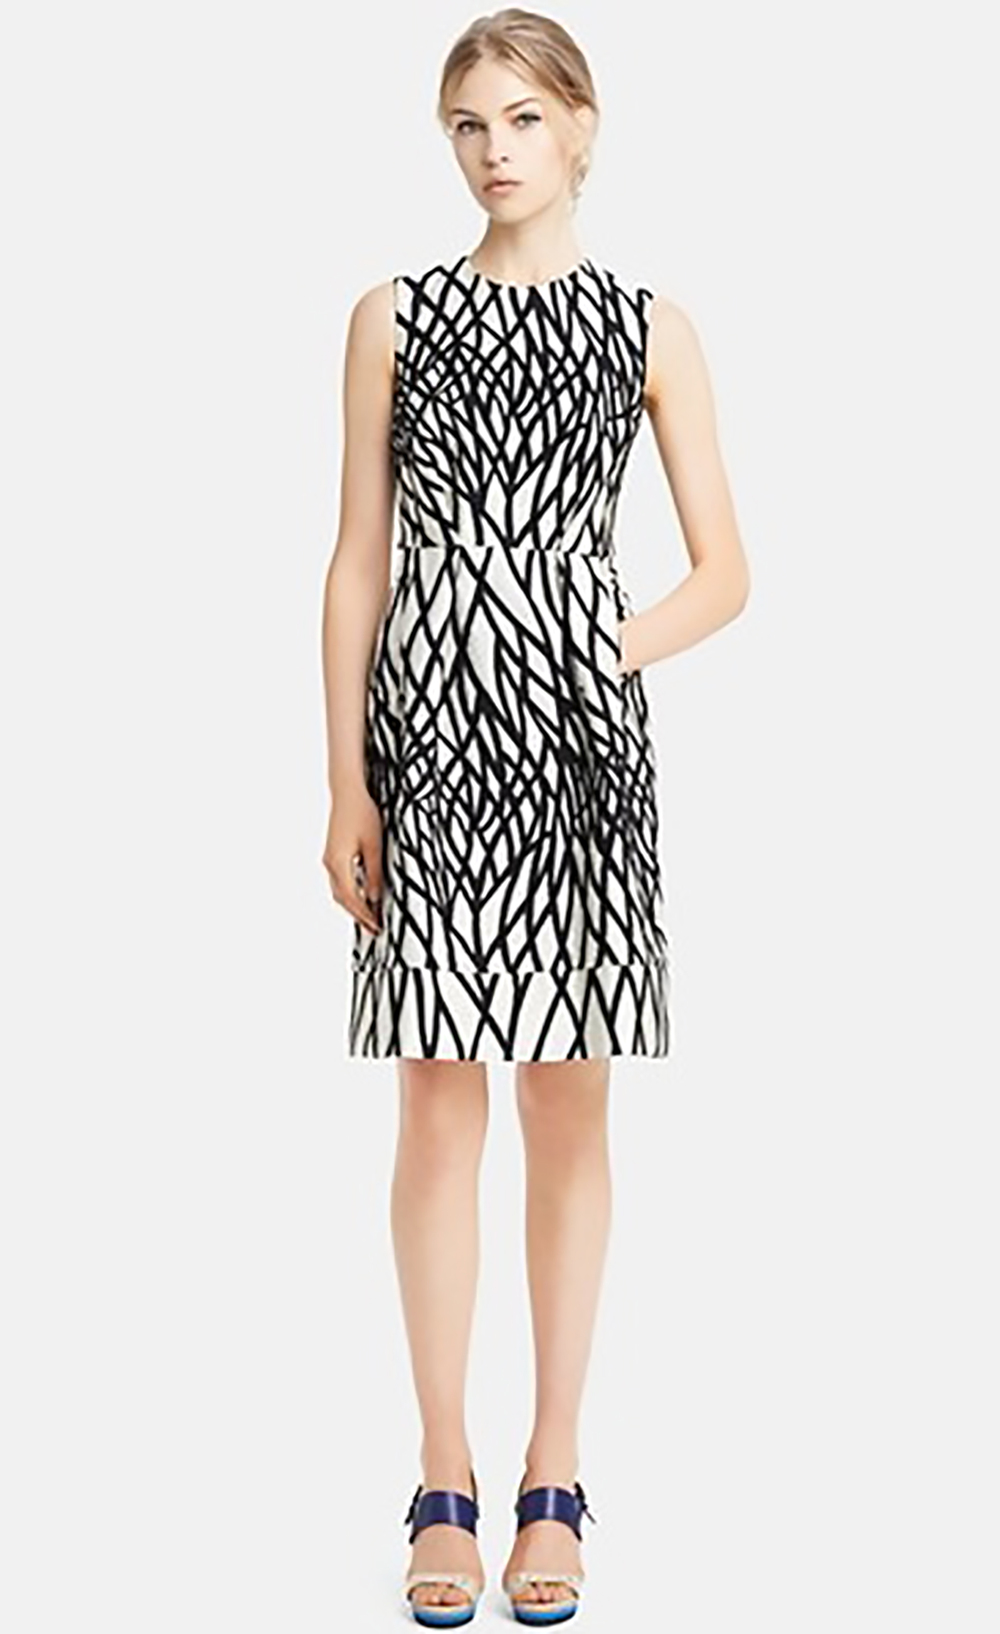 nordstrom marni jacquard cotton blend dress holiday party 1500.jpg